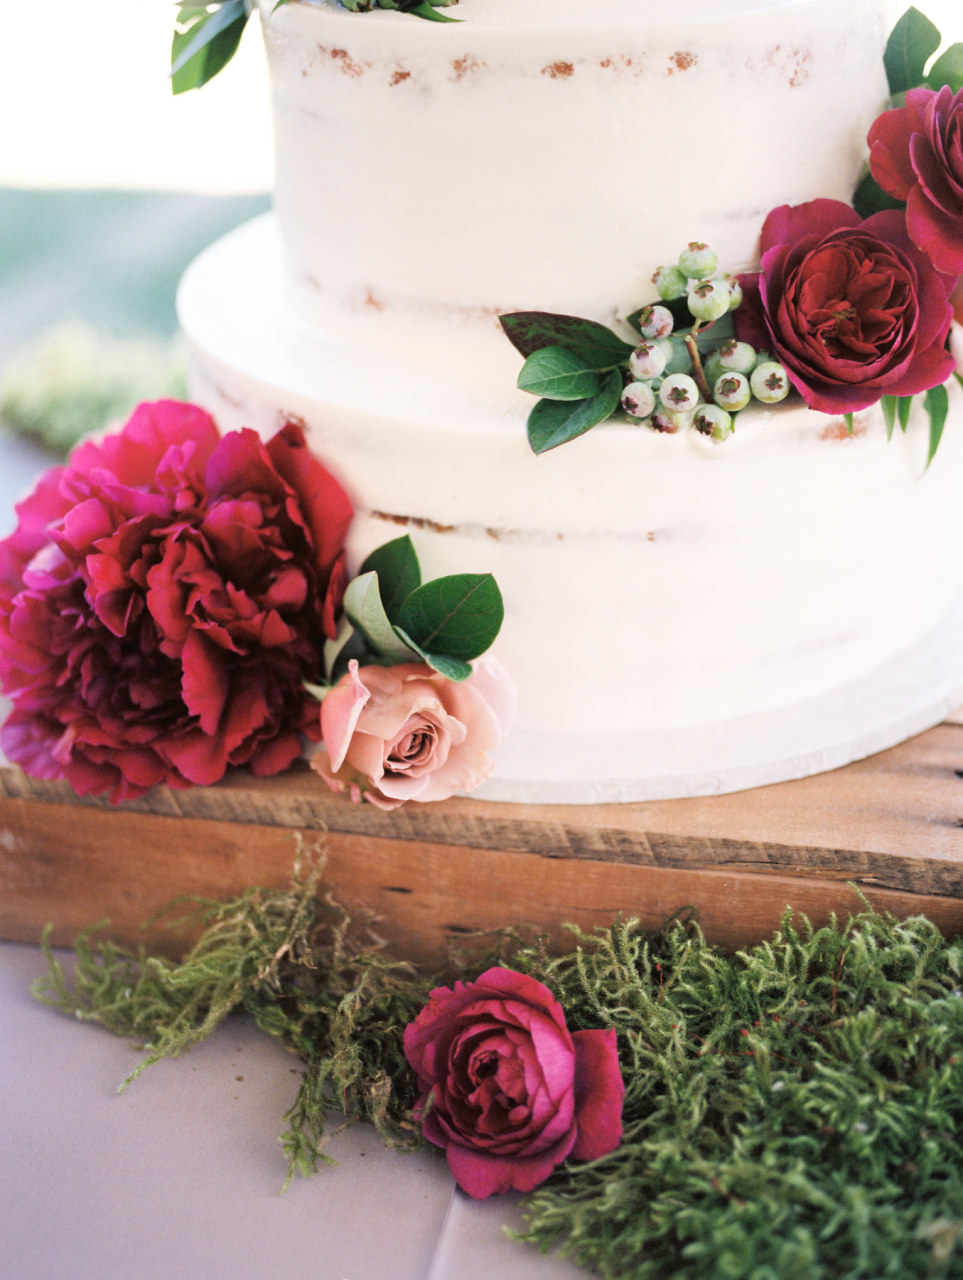 fine-art-wedding-florist-foraged-floral-lewis-and-clark-college-wedding-peony-on-wedding-cake.jpg